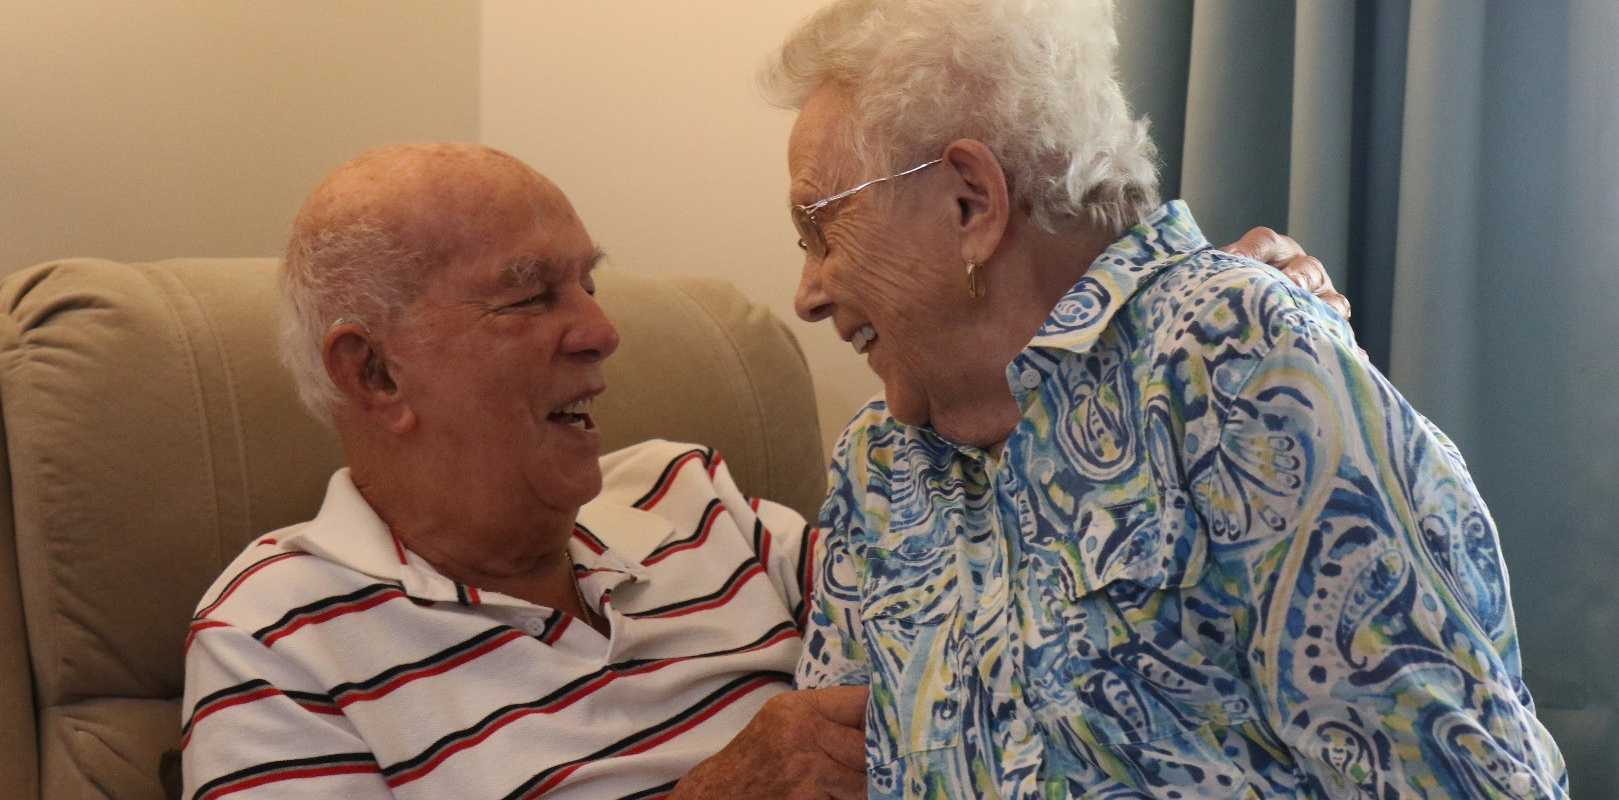 Max, 93, and Marcia Wyss, 89, and Marcia reside at Ozcare's Keith Turnbull Place aged care facility on the Gold Coast, where they share a room and a love that has lasted half a century.